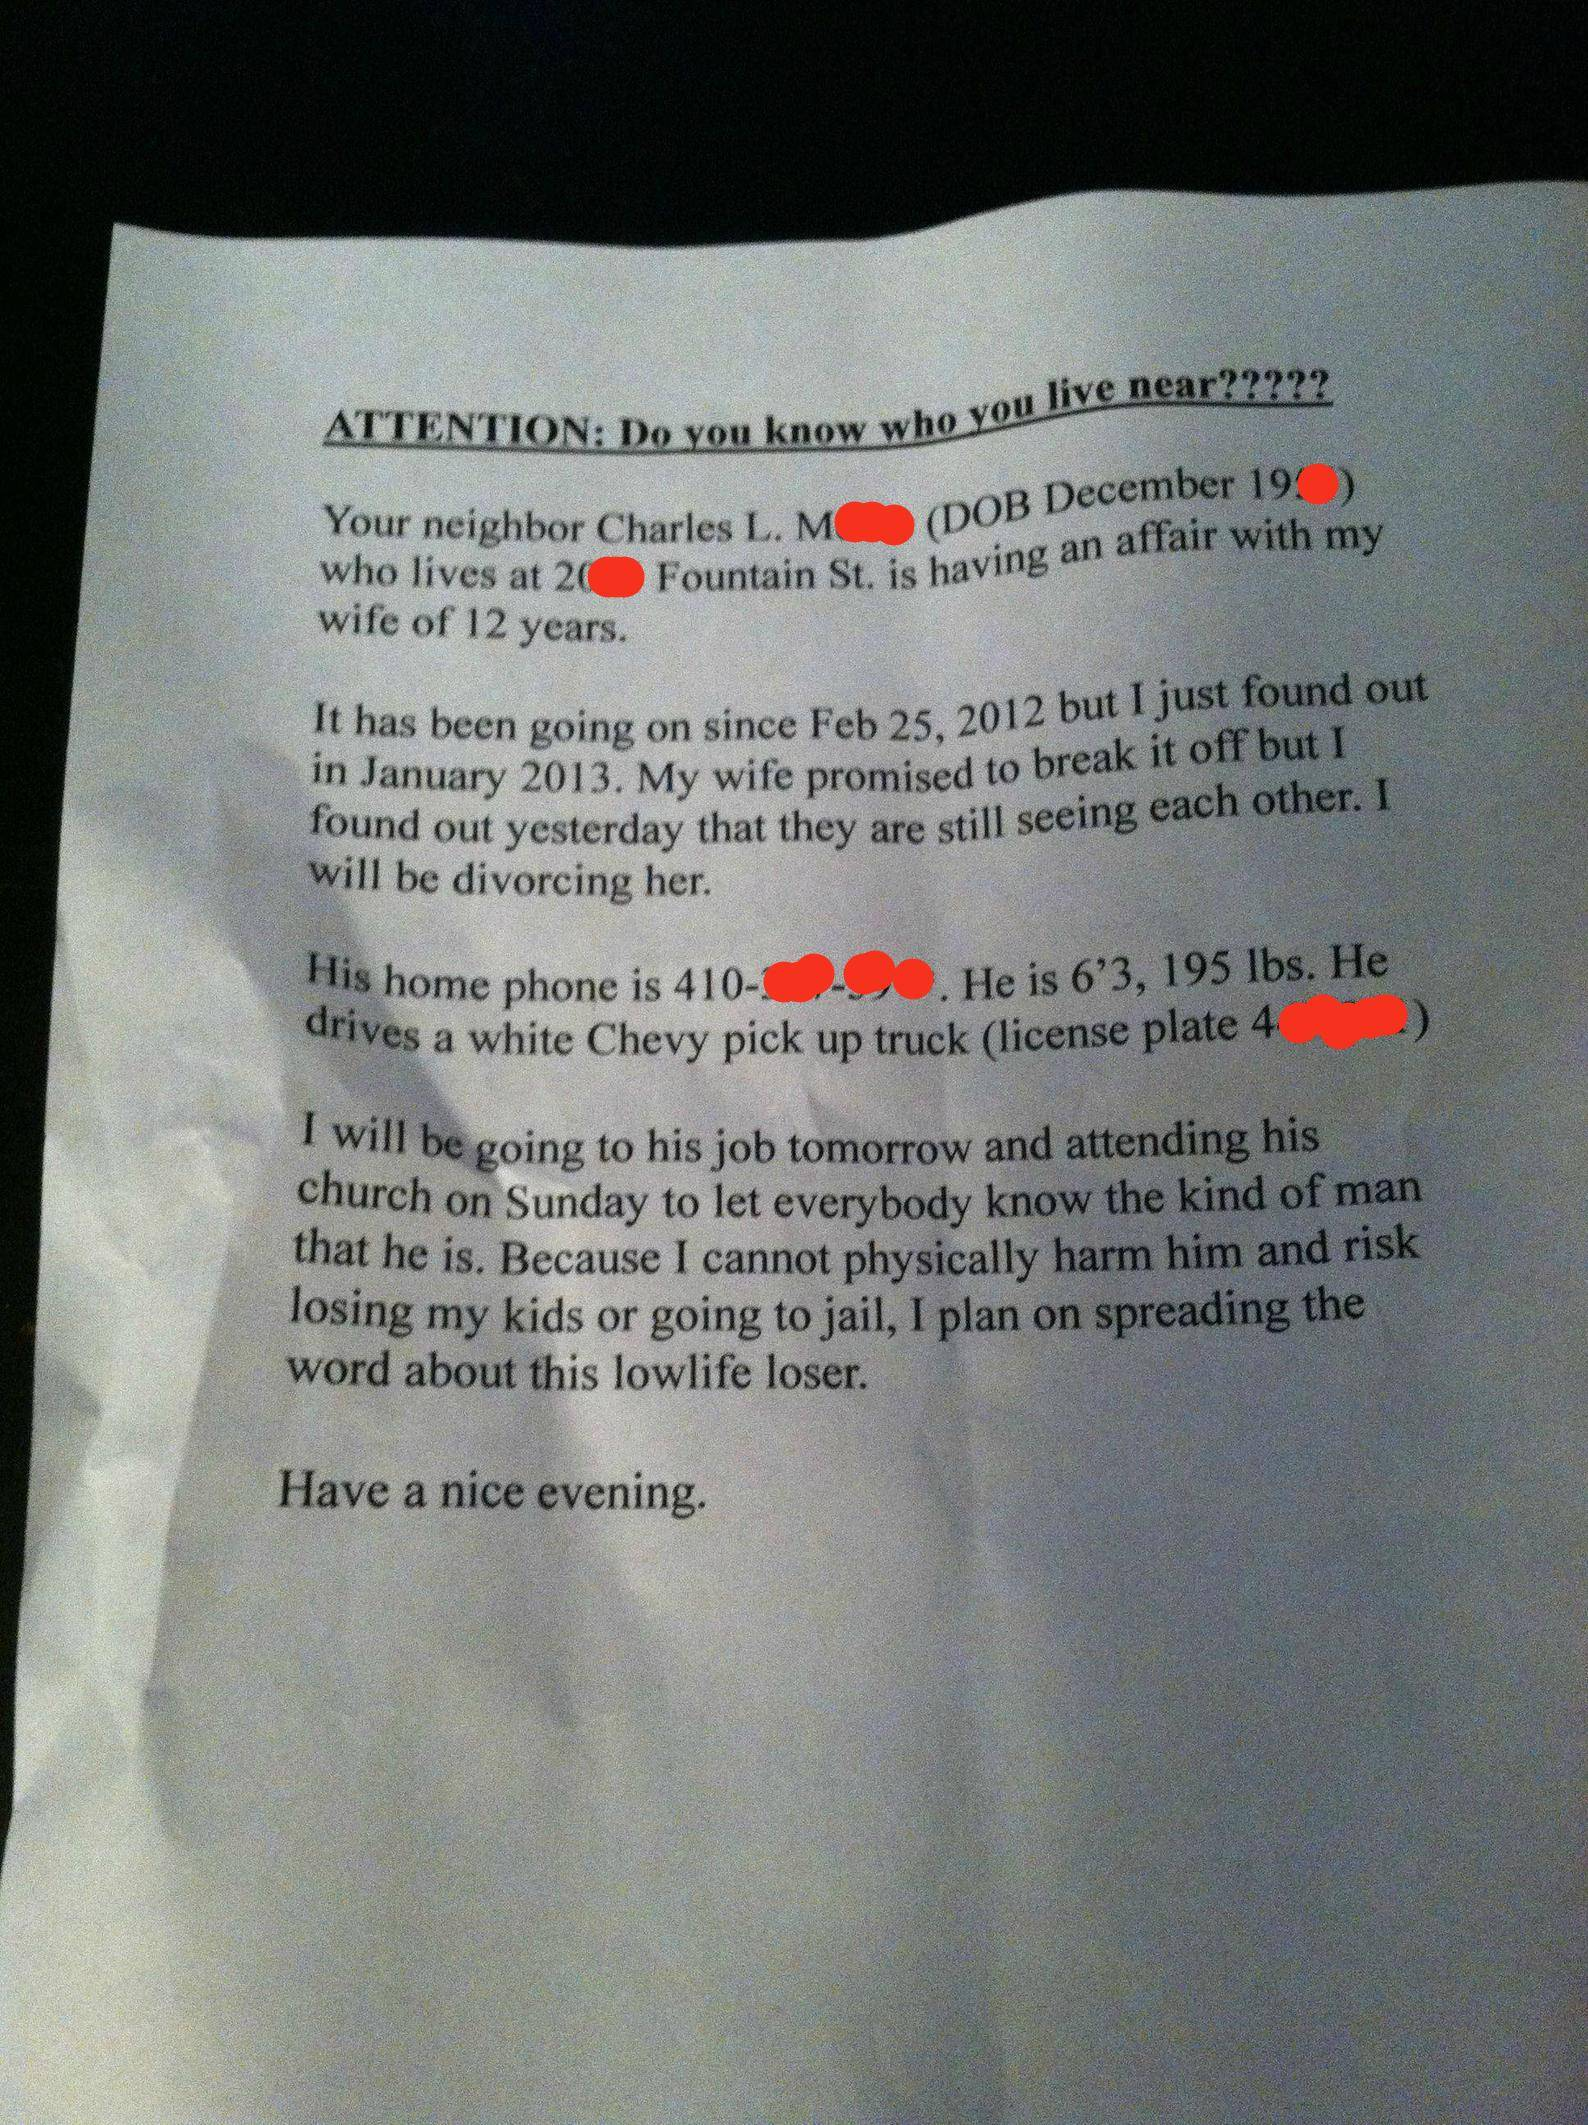 A man found out his wife was having an affair with their neighbor. So he created this flyer and passed it around the neighborhood.